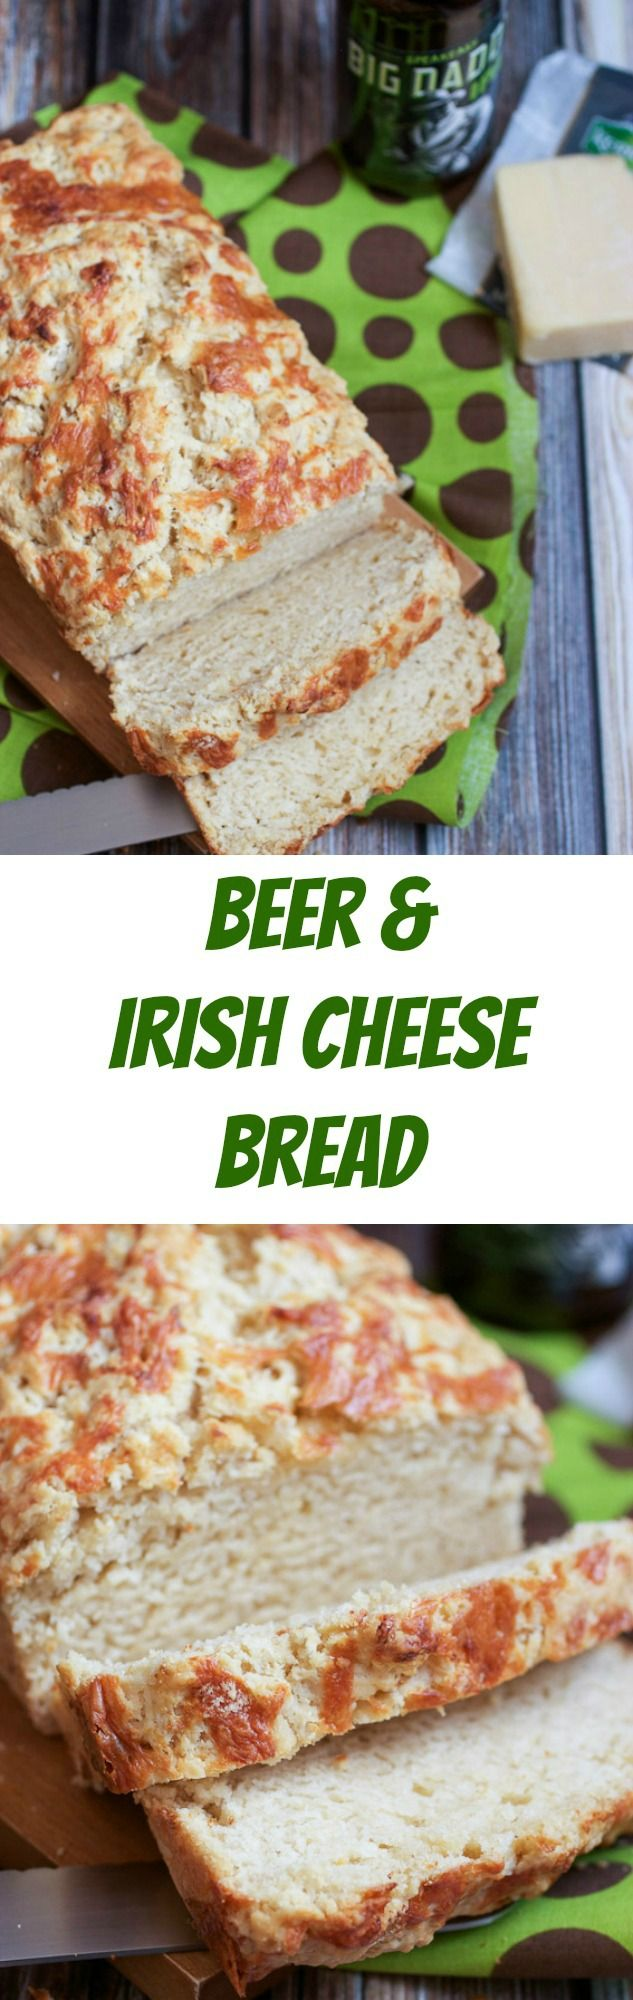 Beer and Irish Cheese Bread | girlinthelittleredkitchen.com